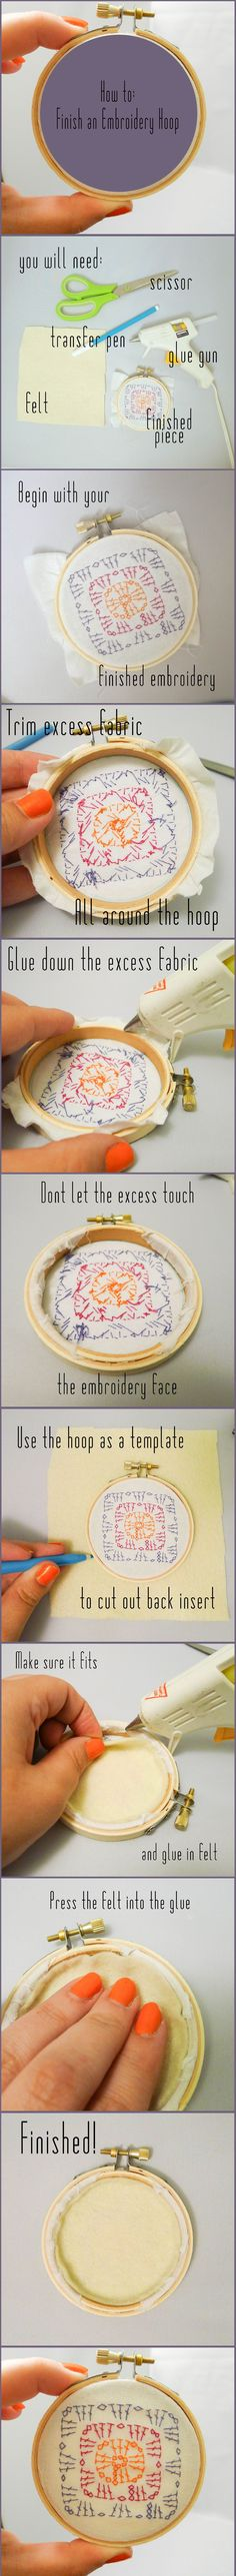 How to Finish an Embroidery Hoop by Teresa Millies from Daisies for Violet Needle-work tricks also about Needlework stitches CLICK VISIT link above for more details - Needlework tips & tricks Embroidery Hoop Art, Cross Stitch Embroidery, Embroidery Patterns, Cross Stitch Patterns, Finishing Embroidery Hoop, Simple Embroidery, Broderie Simple, Diy Love, Diy Inspiration